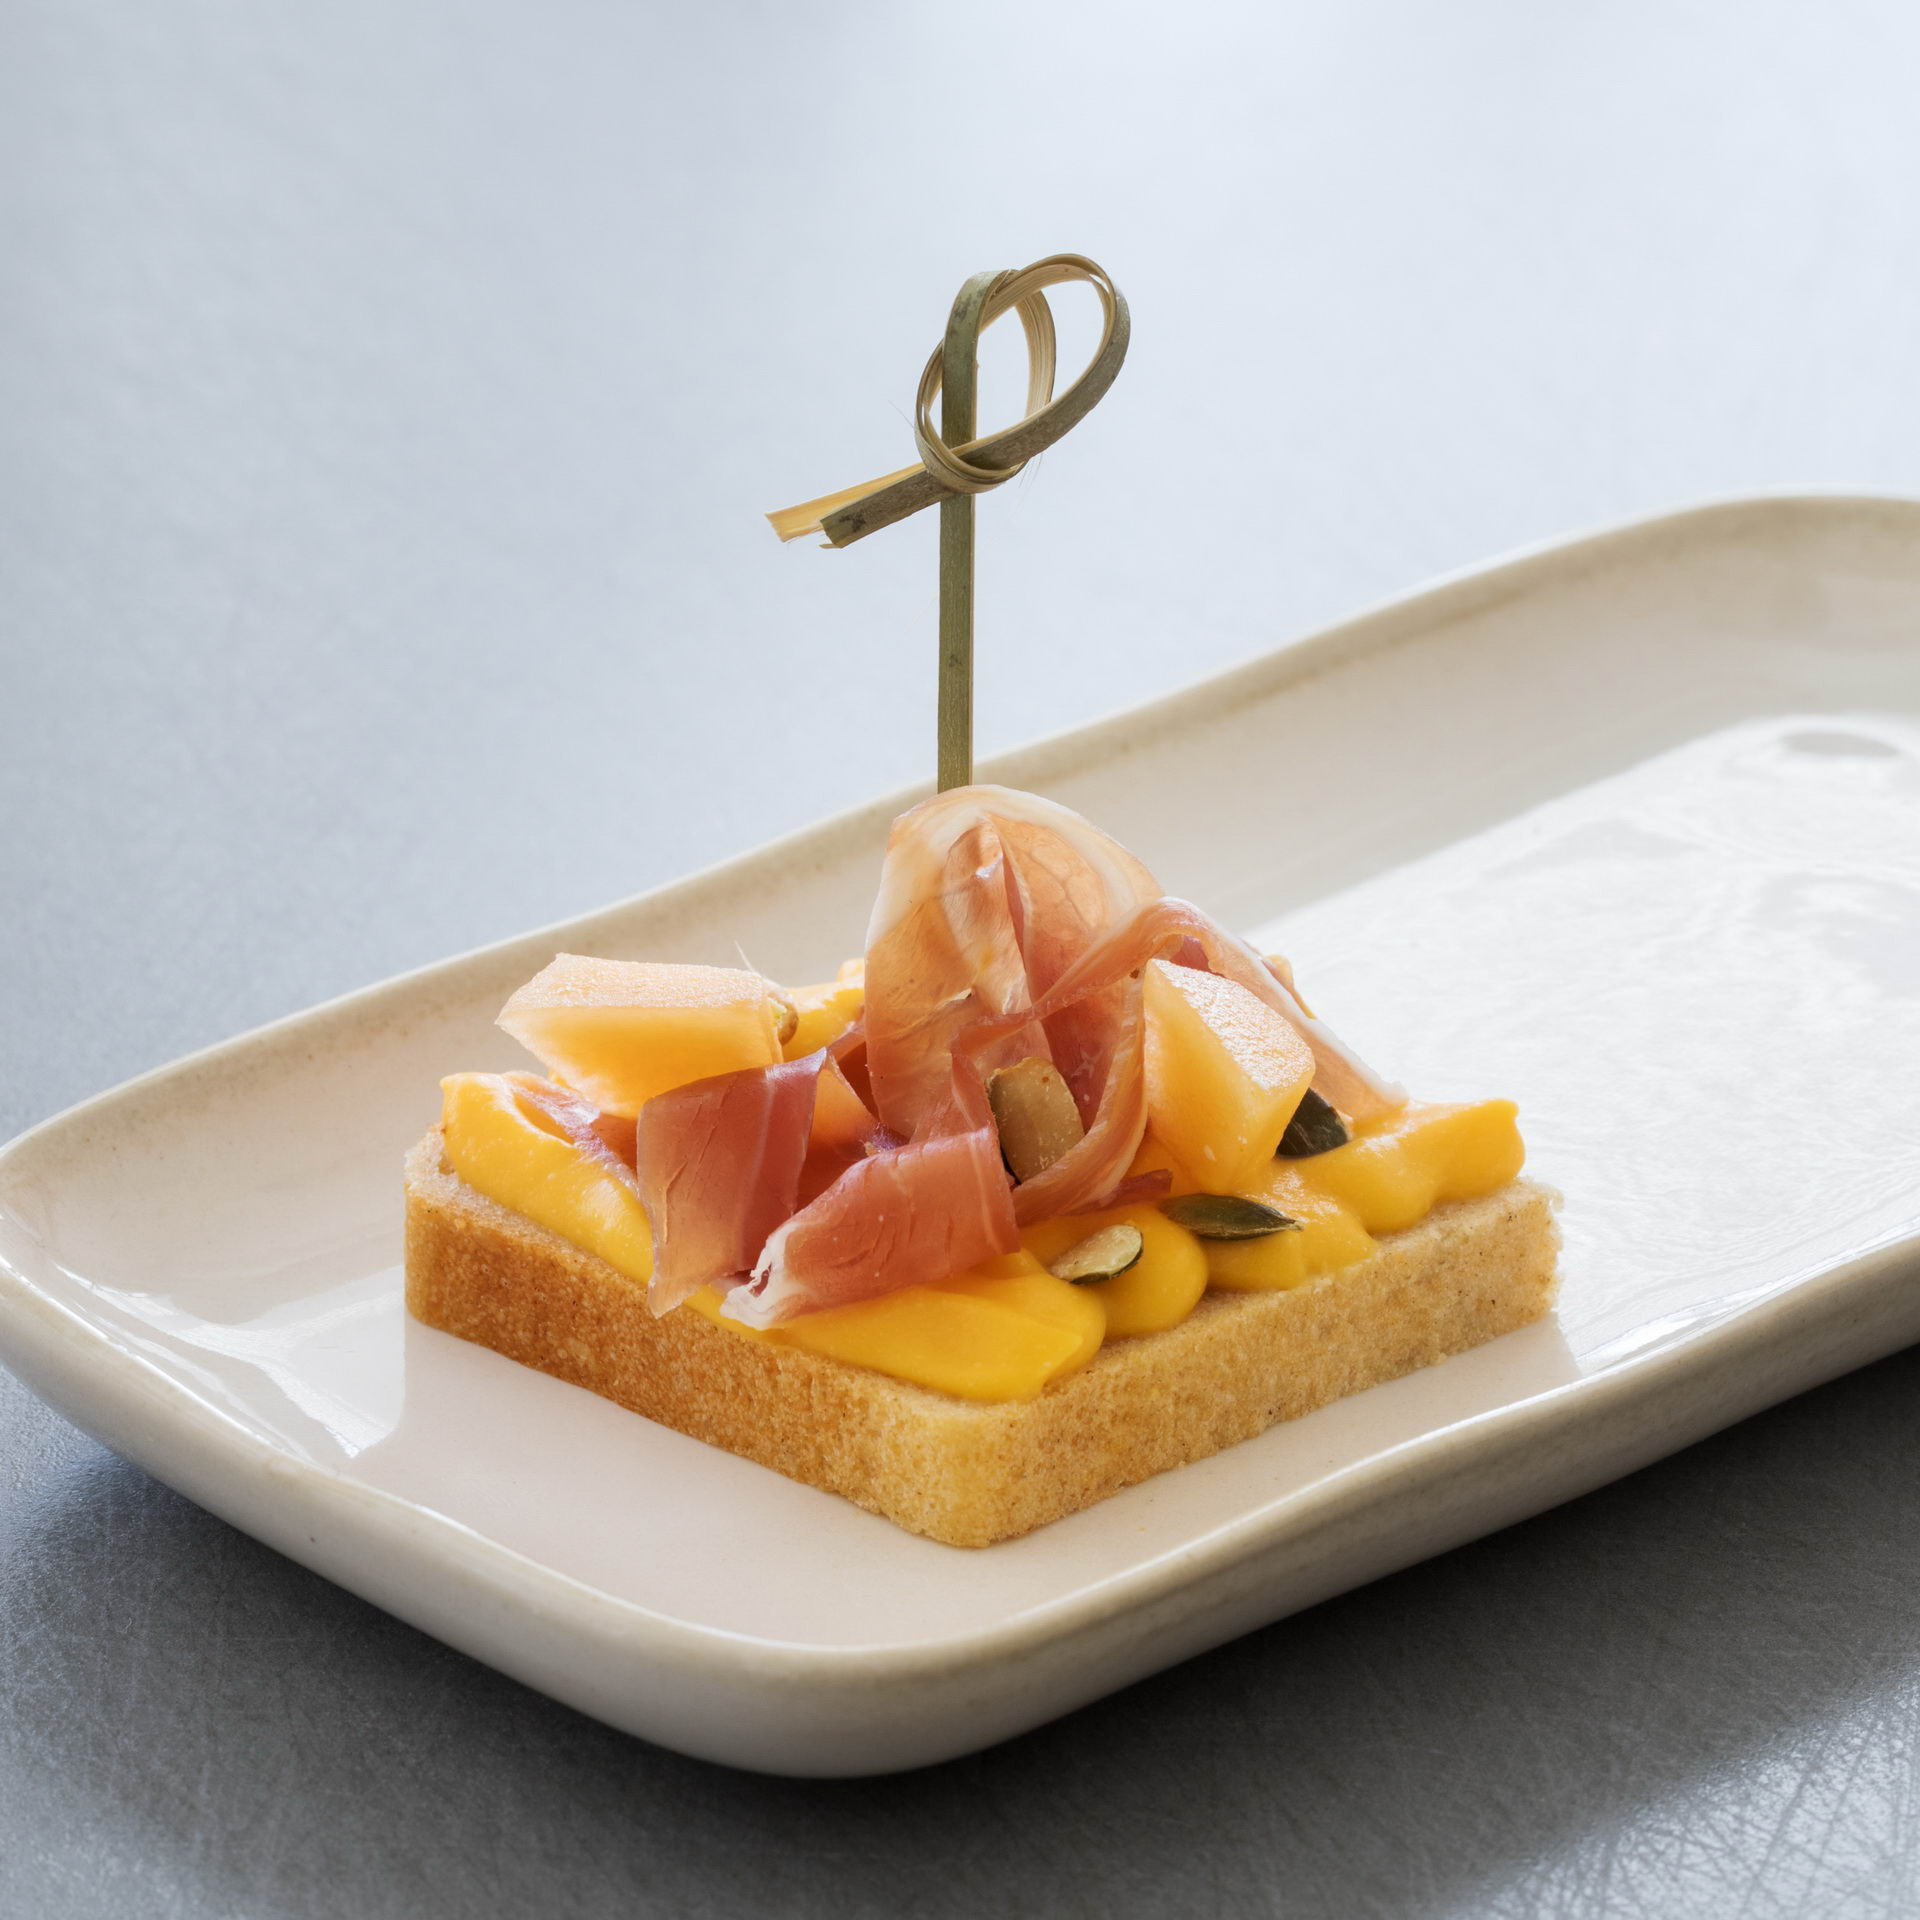 canape-with-parma-ham